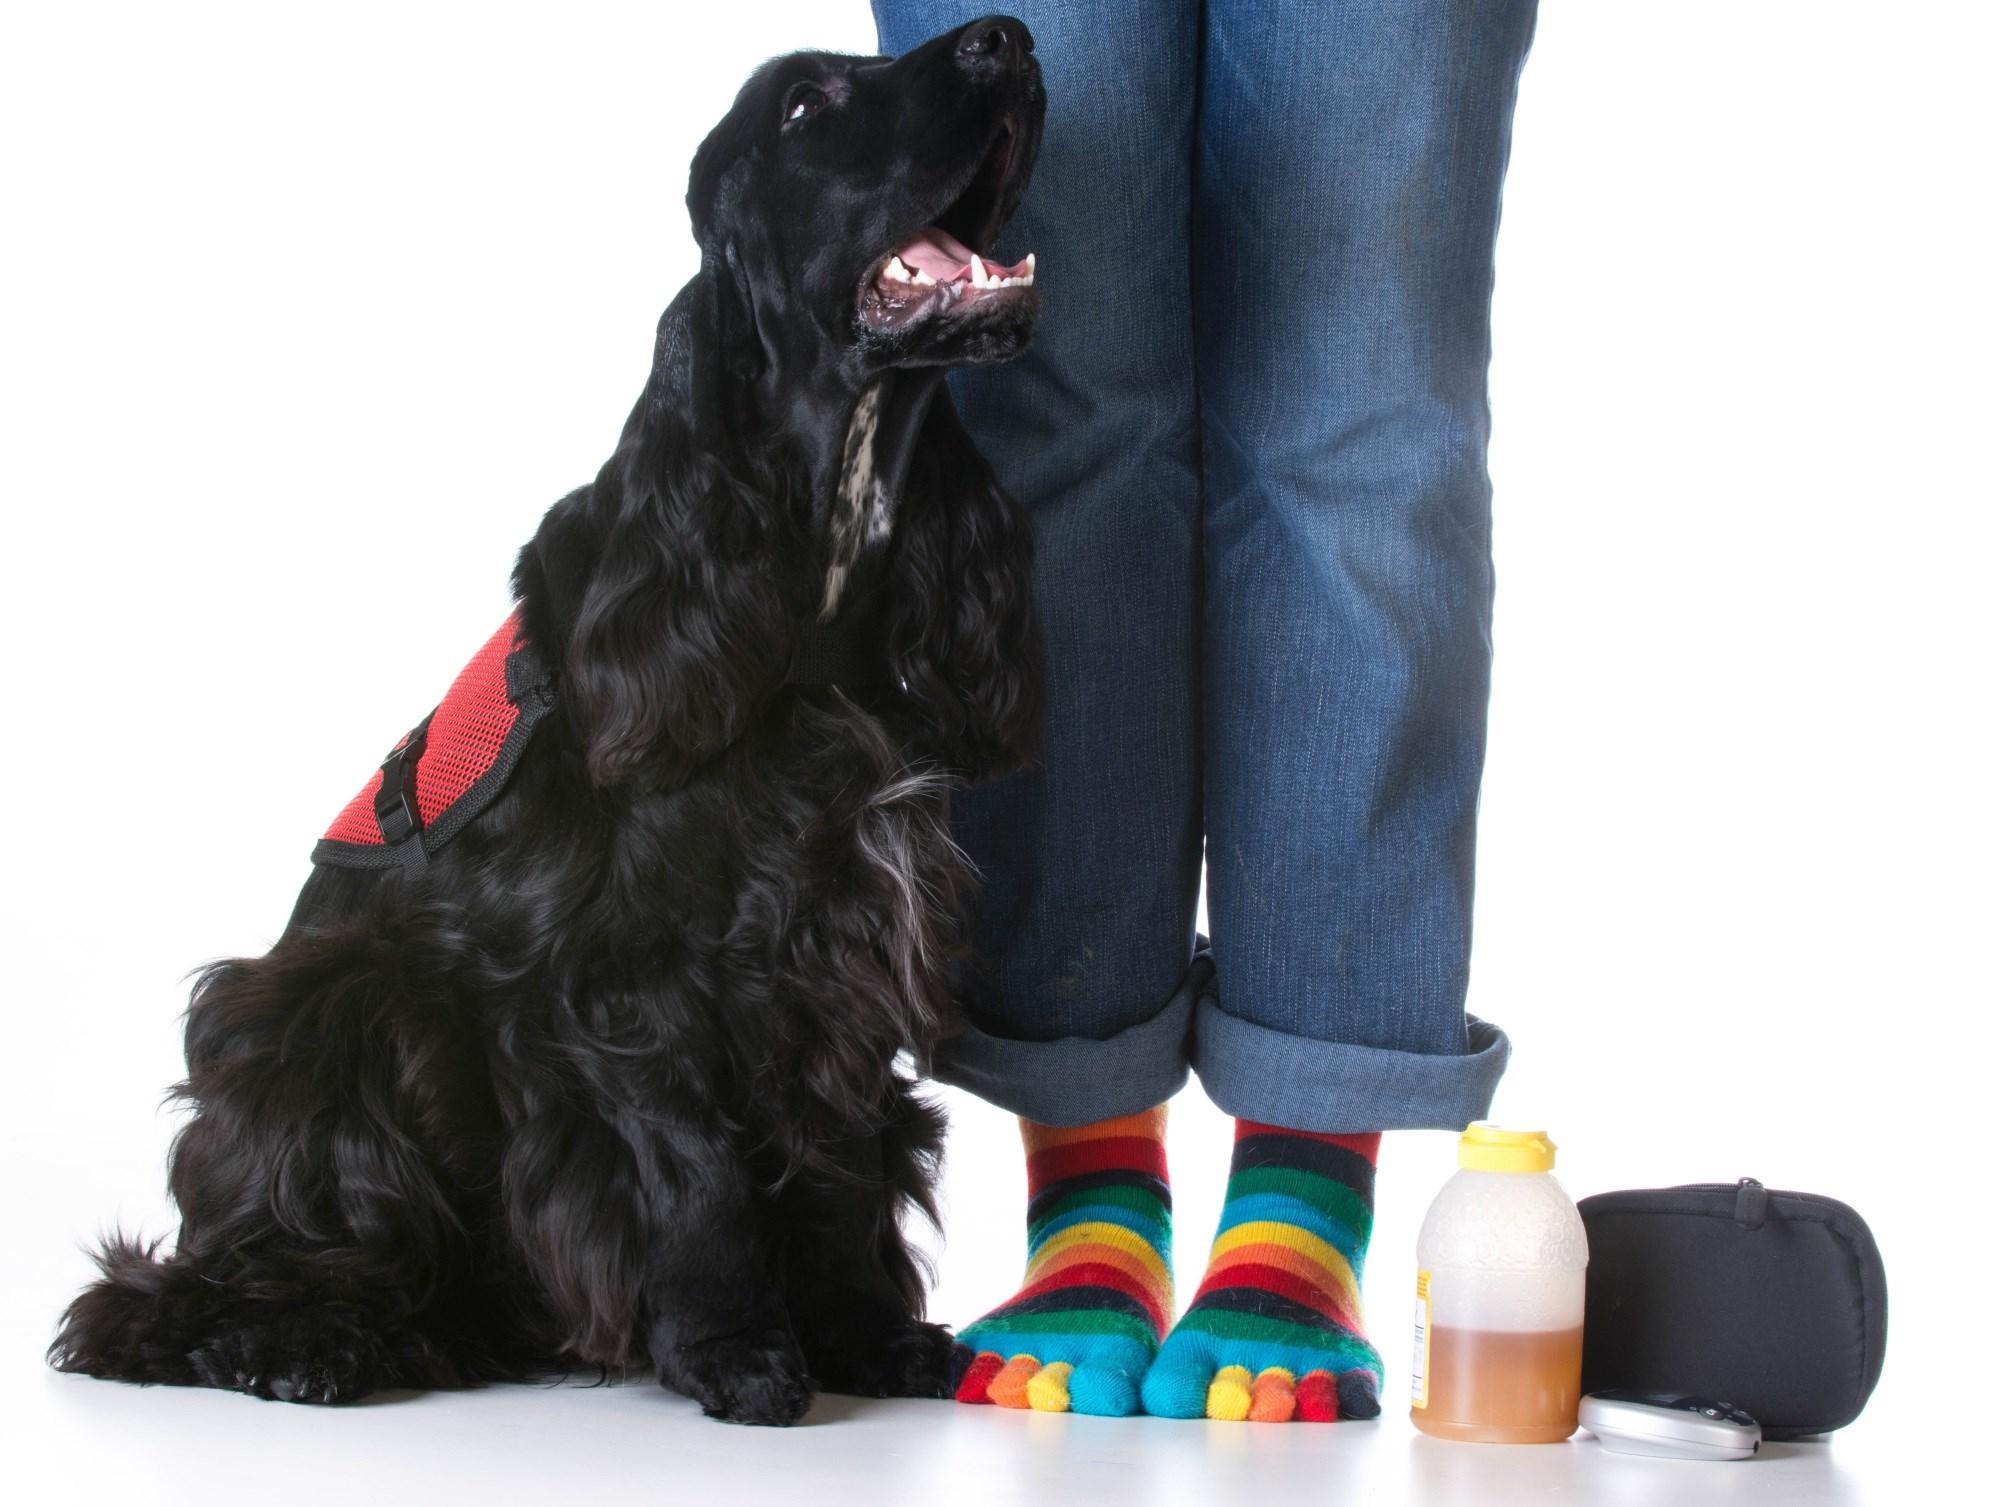 Trained Alert Dogs Can Detect Impending T1D-Related Events